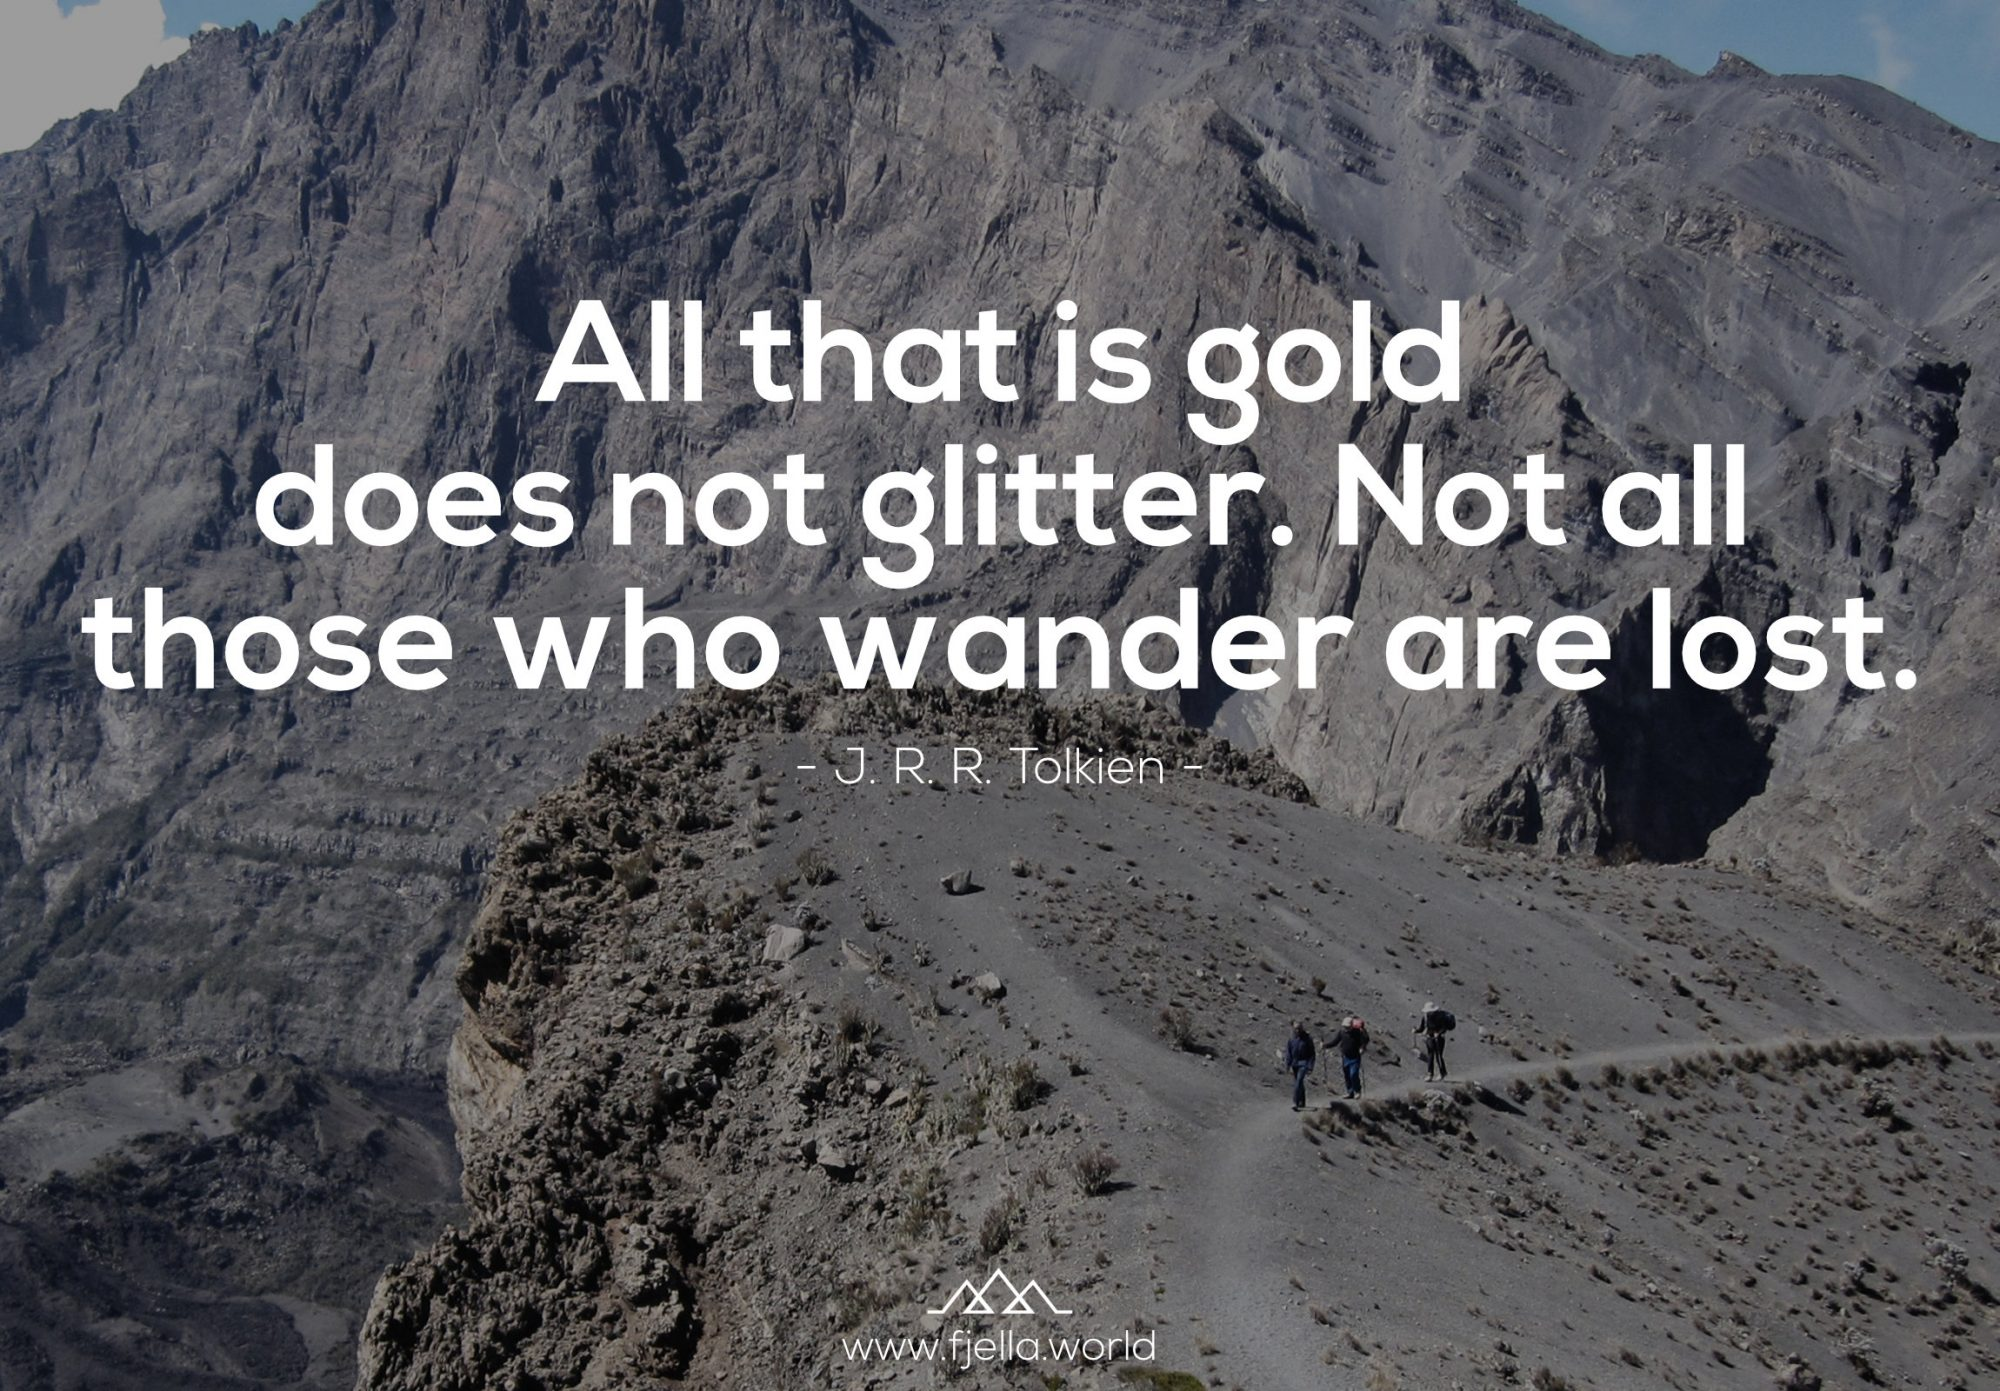 All that is gold does not glitter. Not all those who wander are lost. J.R.R. Tolkien, Bergspruch, Wanderzitat, Inspiration, Motivation, Zitat, Spruch, Reisezitate, Motivation